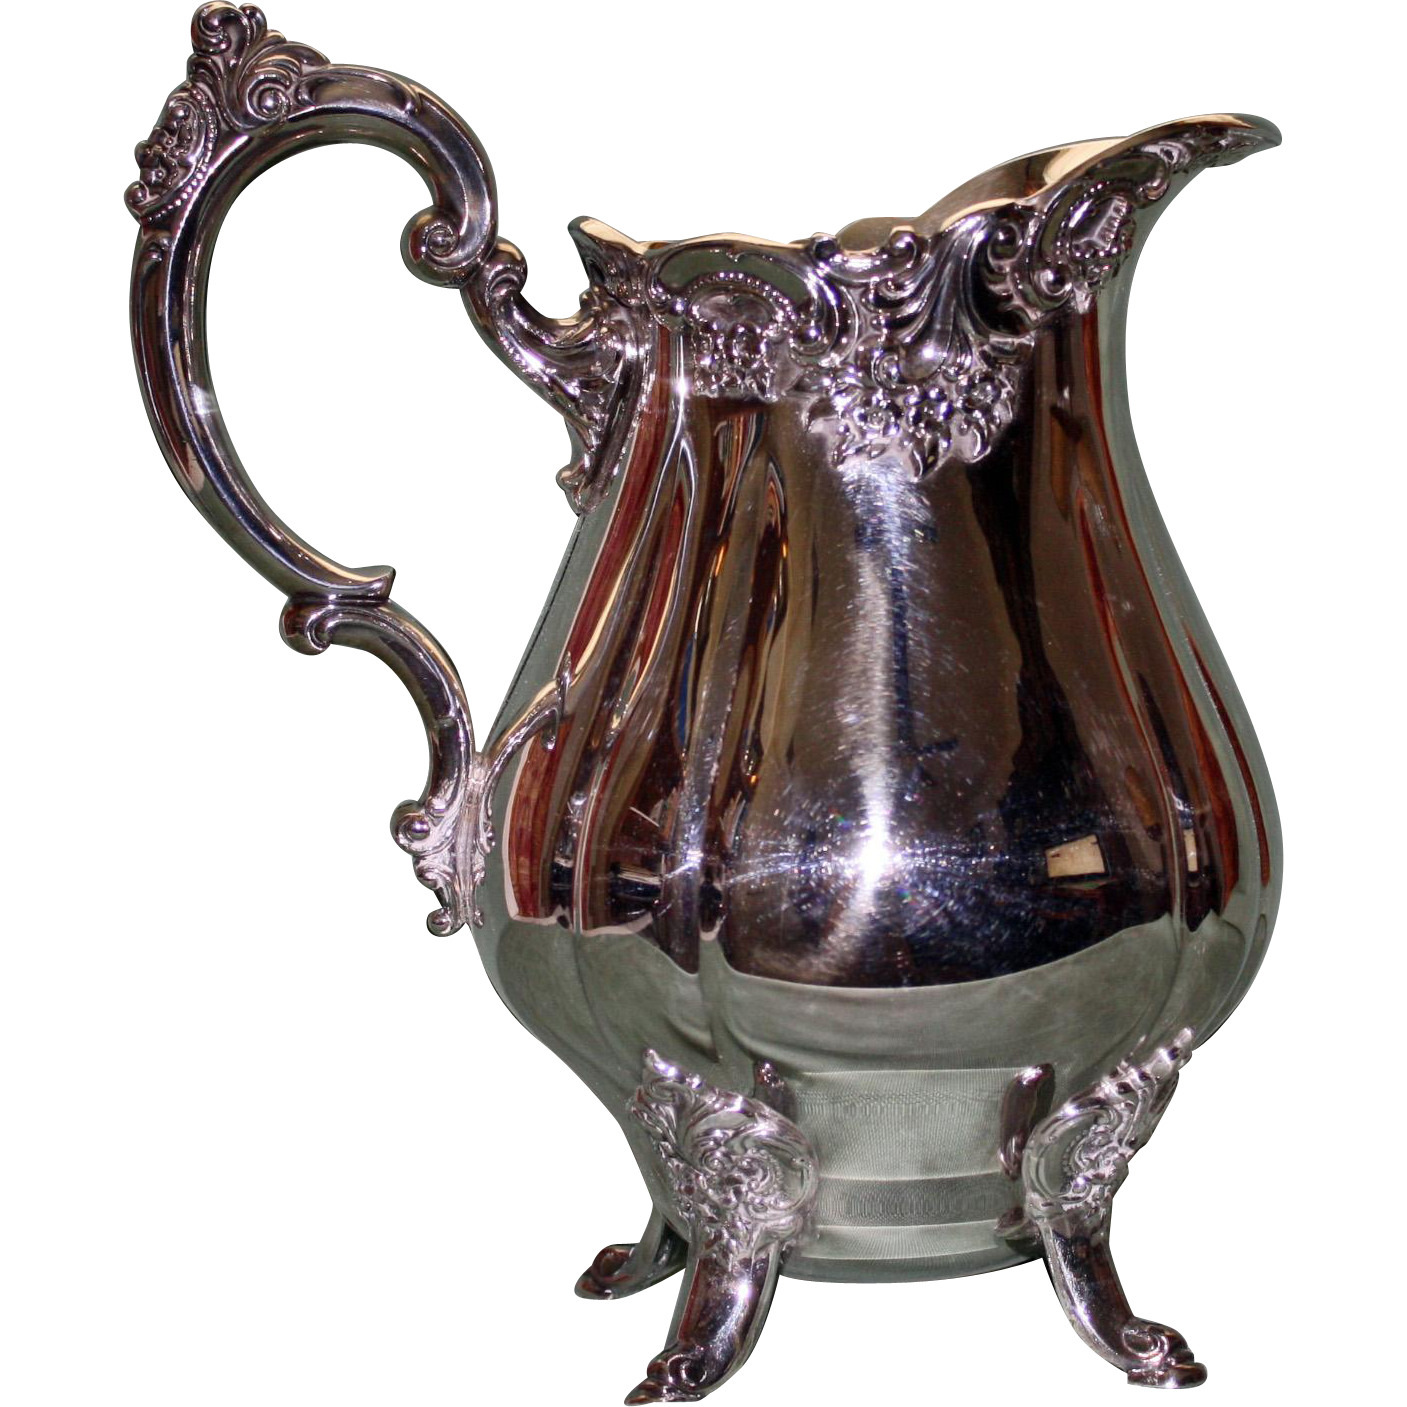 Offered is this outstanding silver plate pitcher by Wallace in their Baroque pattern. The height is 9.5 inches and the distance from front to back is